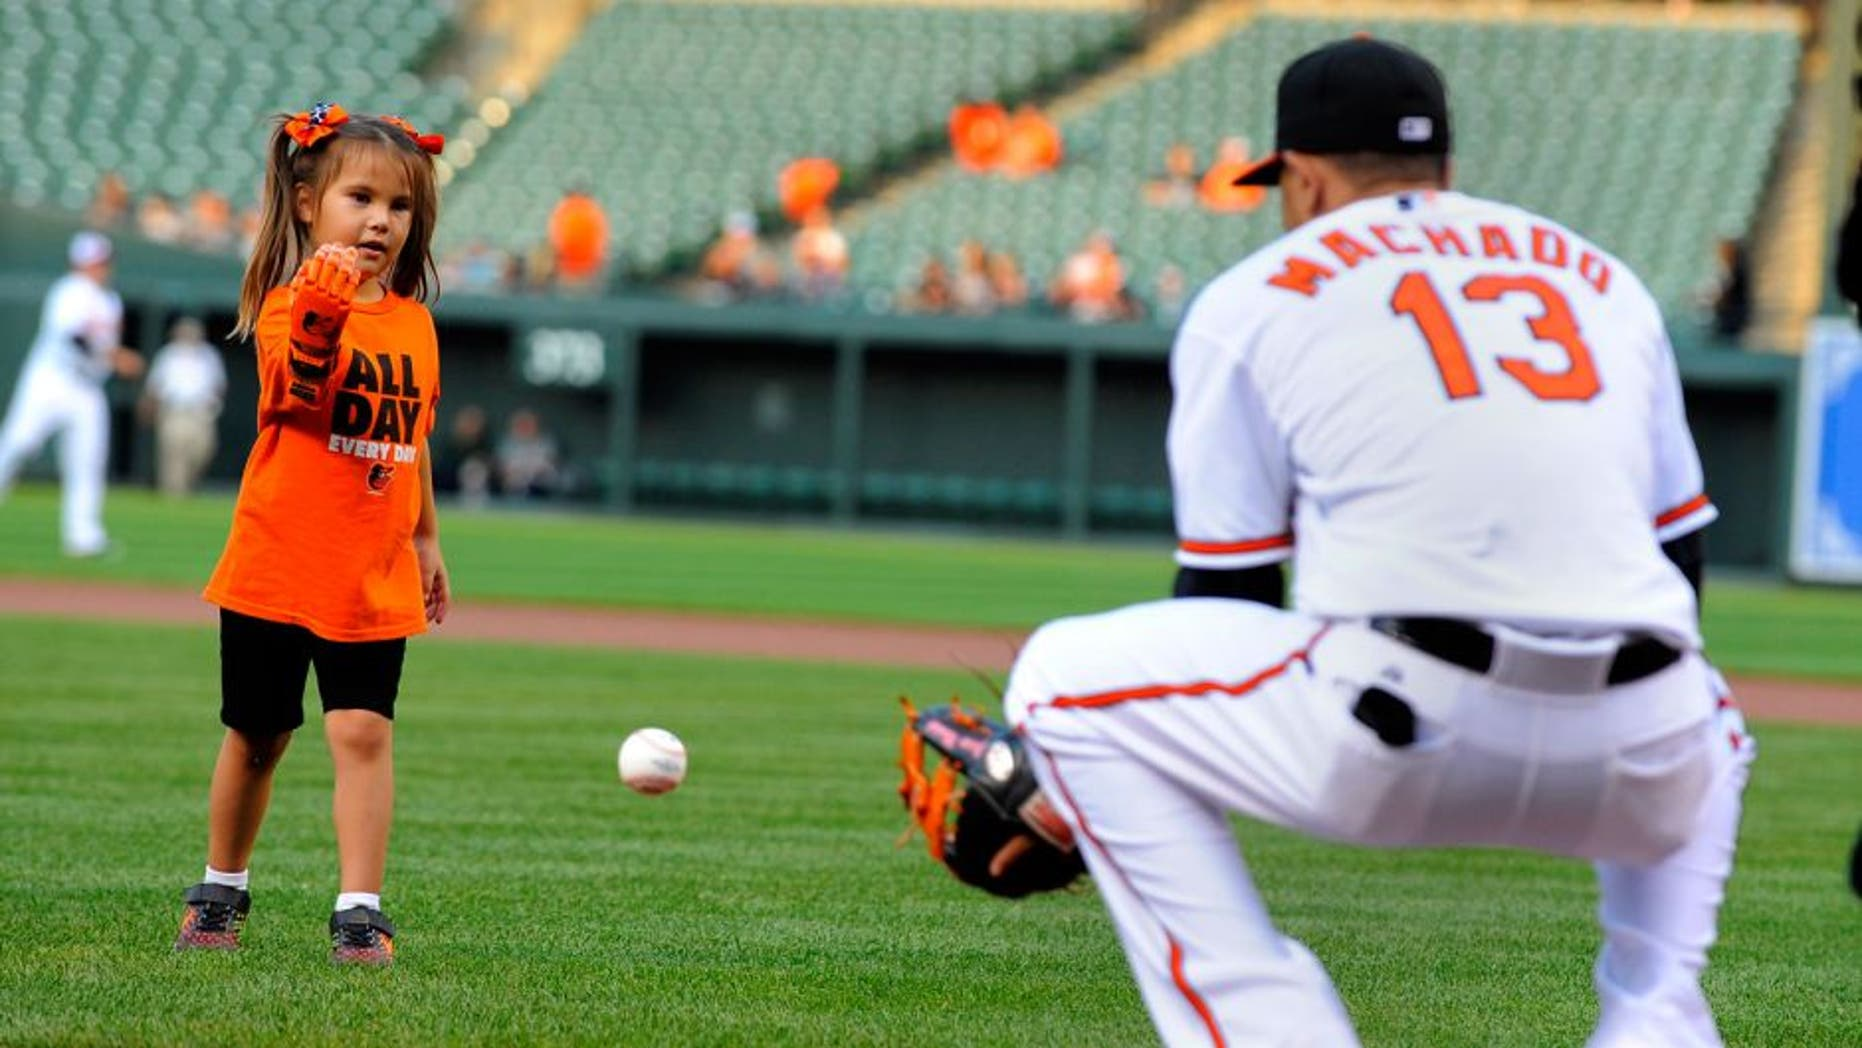 """Hailey Dawson, a 5-year-old from Las Vegas, throws the ceremonial first pitch before a game between the Baltimore Orioles and Oakland Athletics on Monday, Aug. 17, 2015, at Camden Yards in Baltimore. Hailey was born with Poland Syndrome. Engineering students at the University of Nevada, Las Vegas created the """"Flexy Hand 2"""" that she wore to throw the ball. (Lloyd Fox/Baltimore Sun/TNS via Getty Images)"""